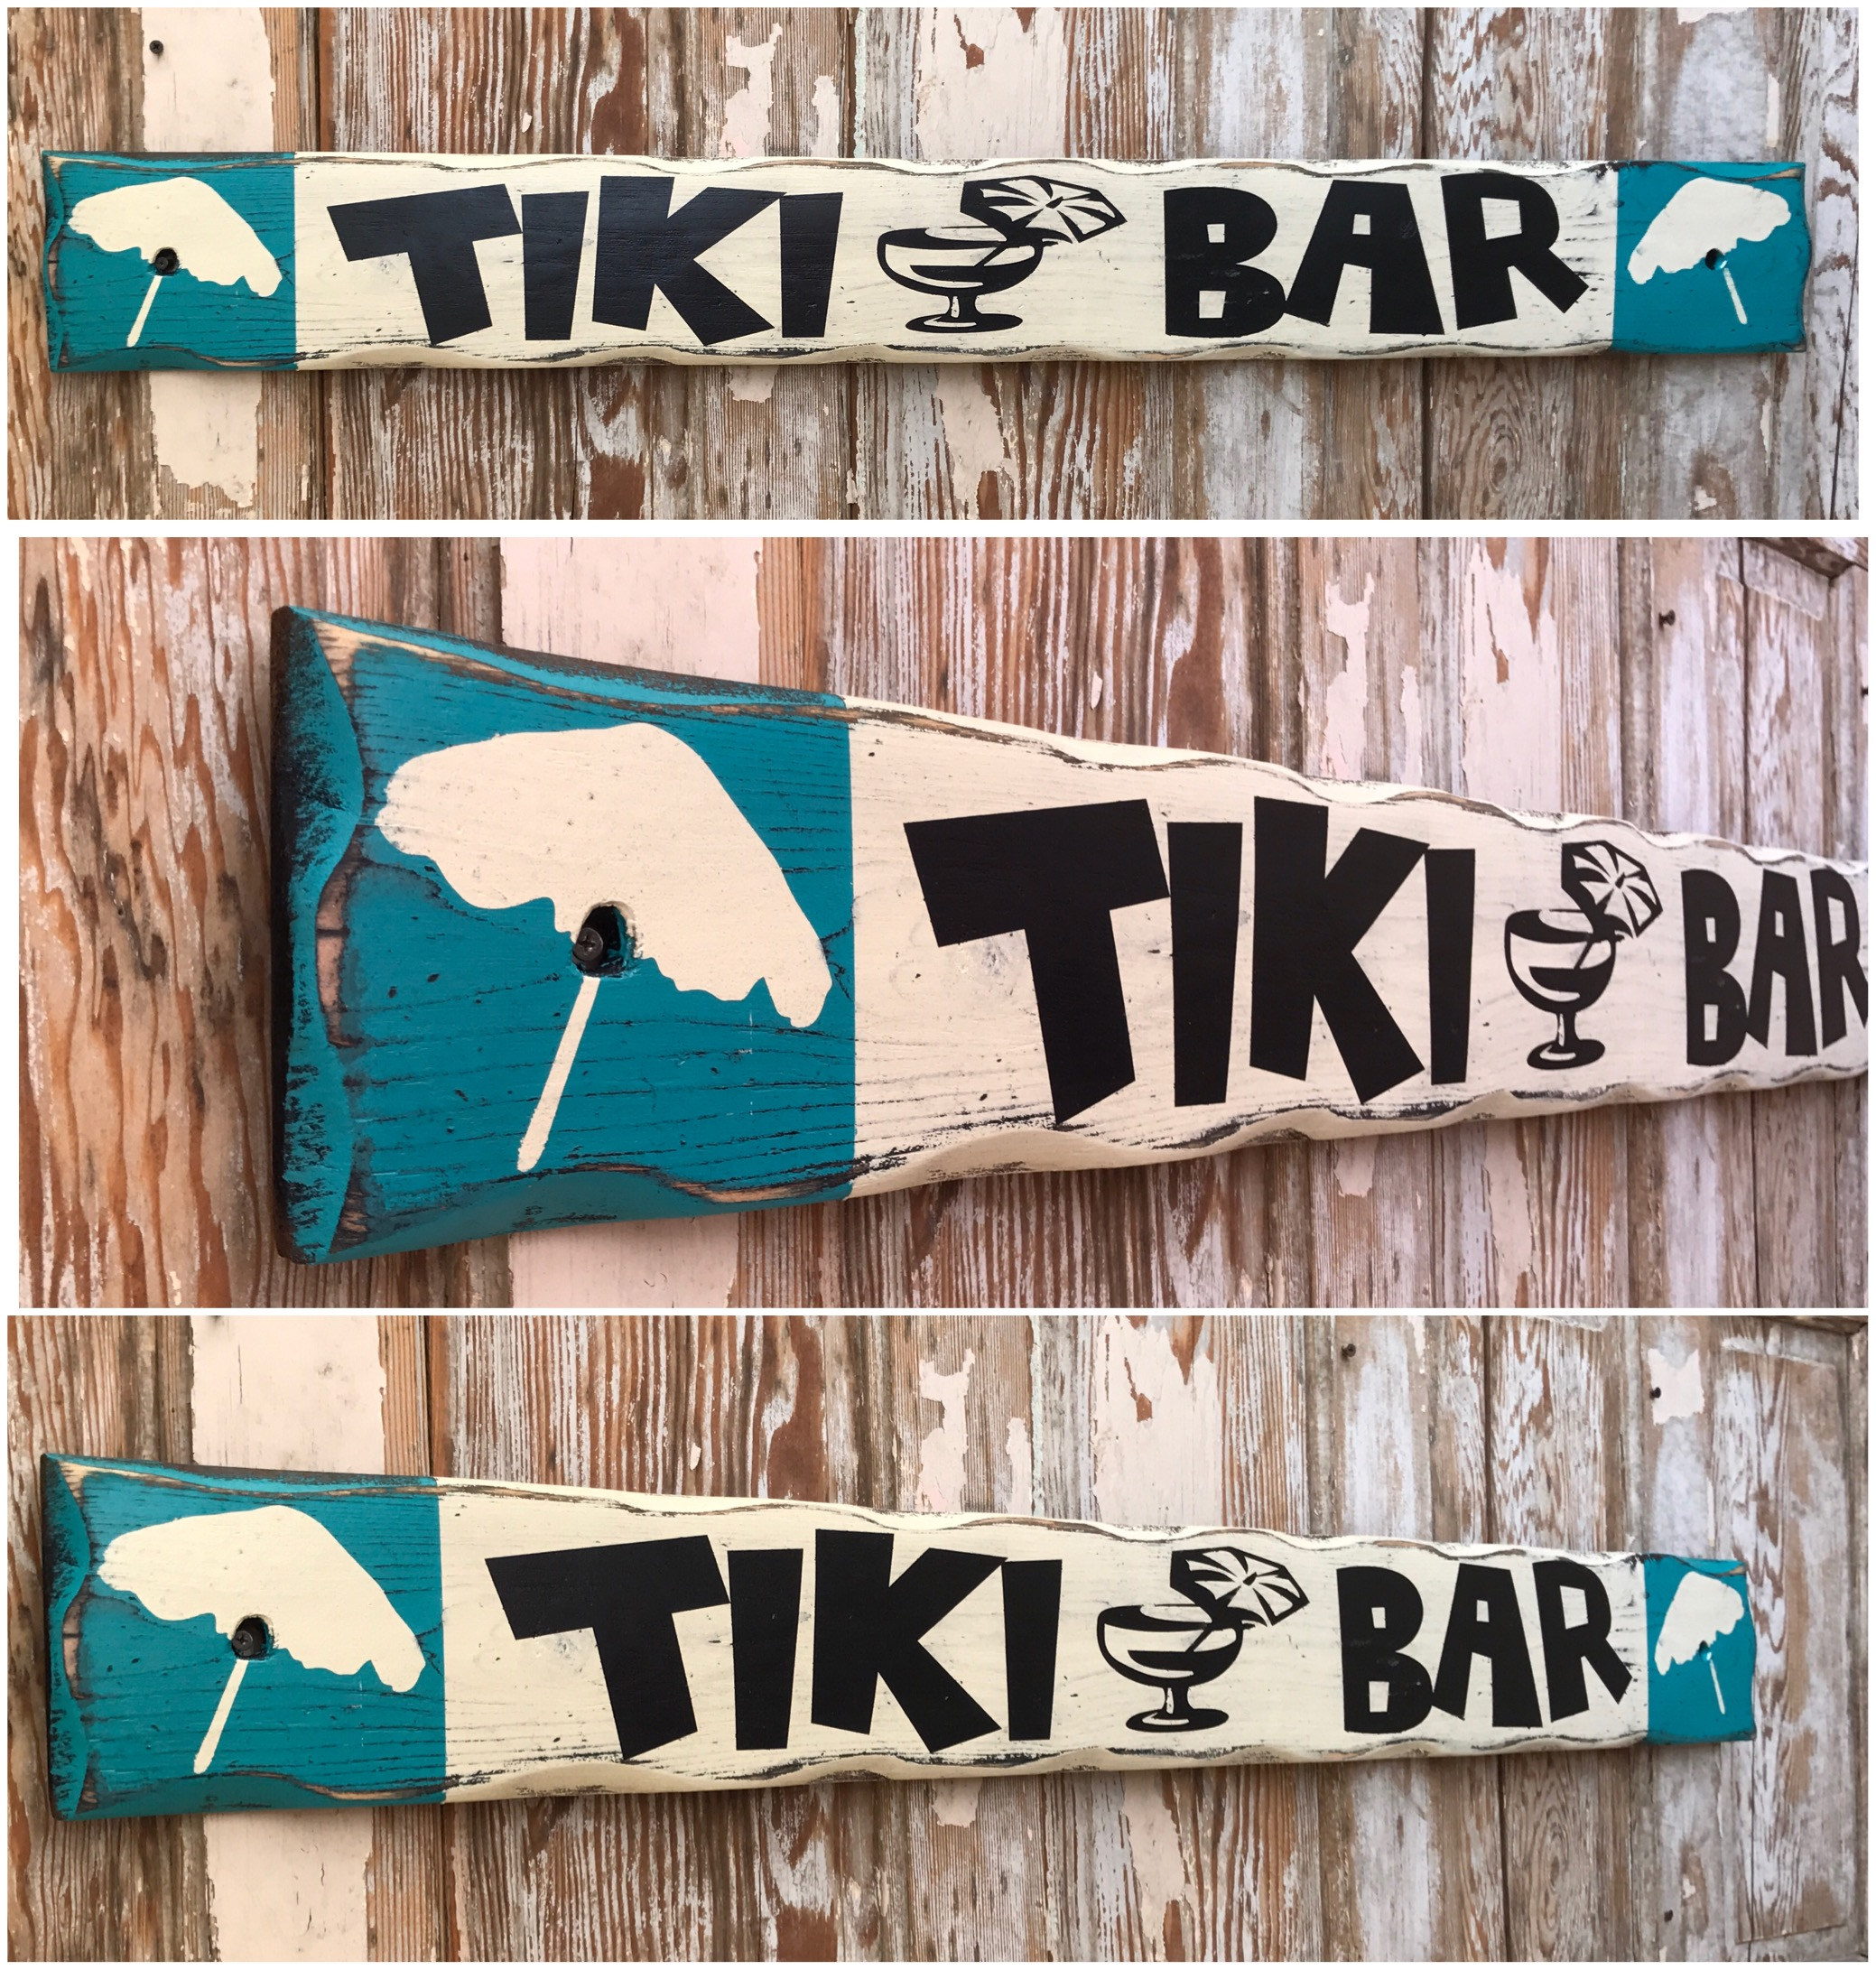 Tiki Bar.  Rustic 4 Foot Long Wood Sign